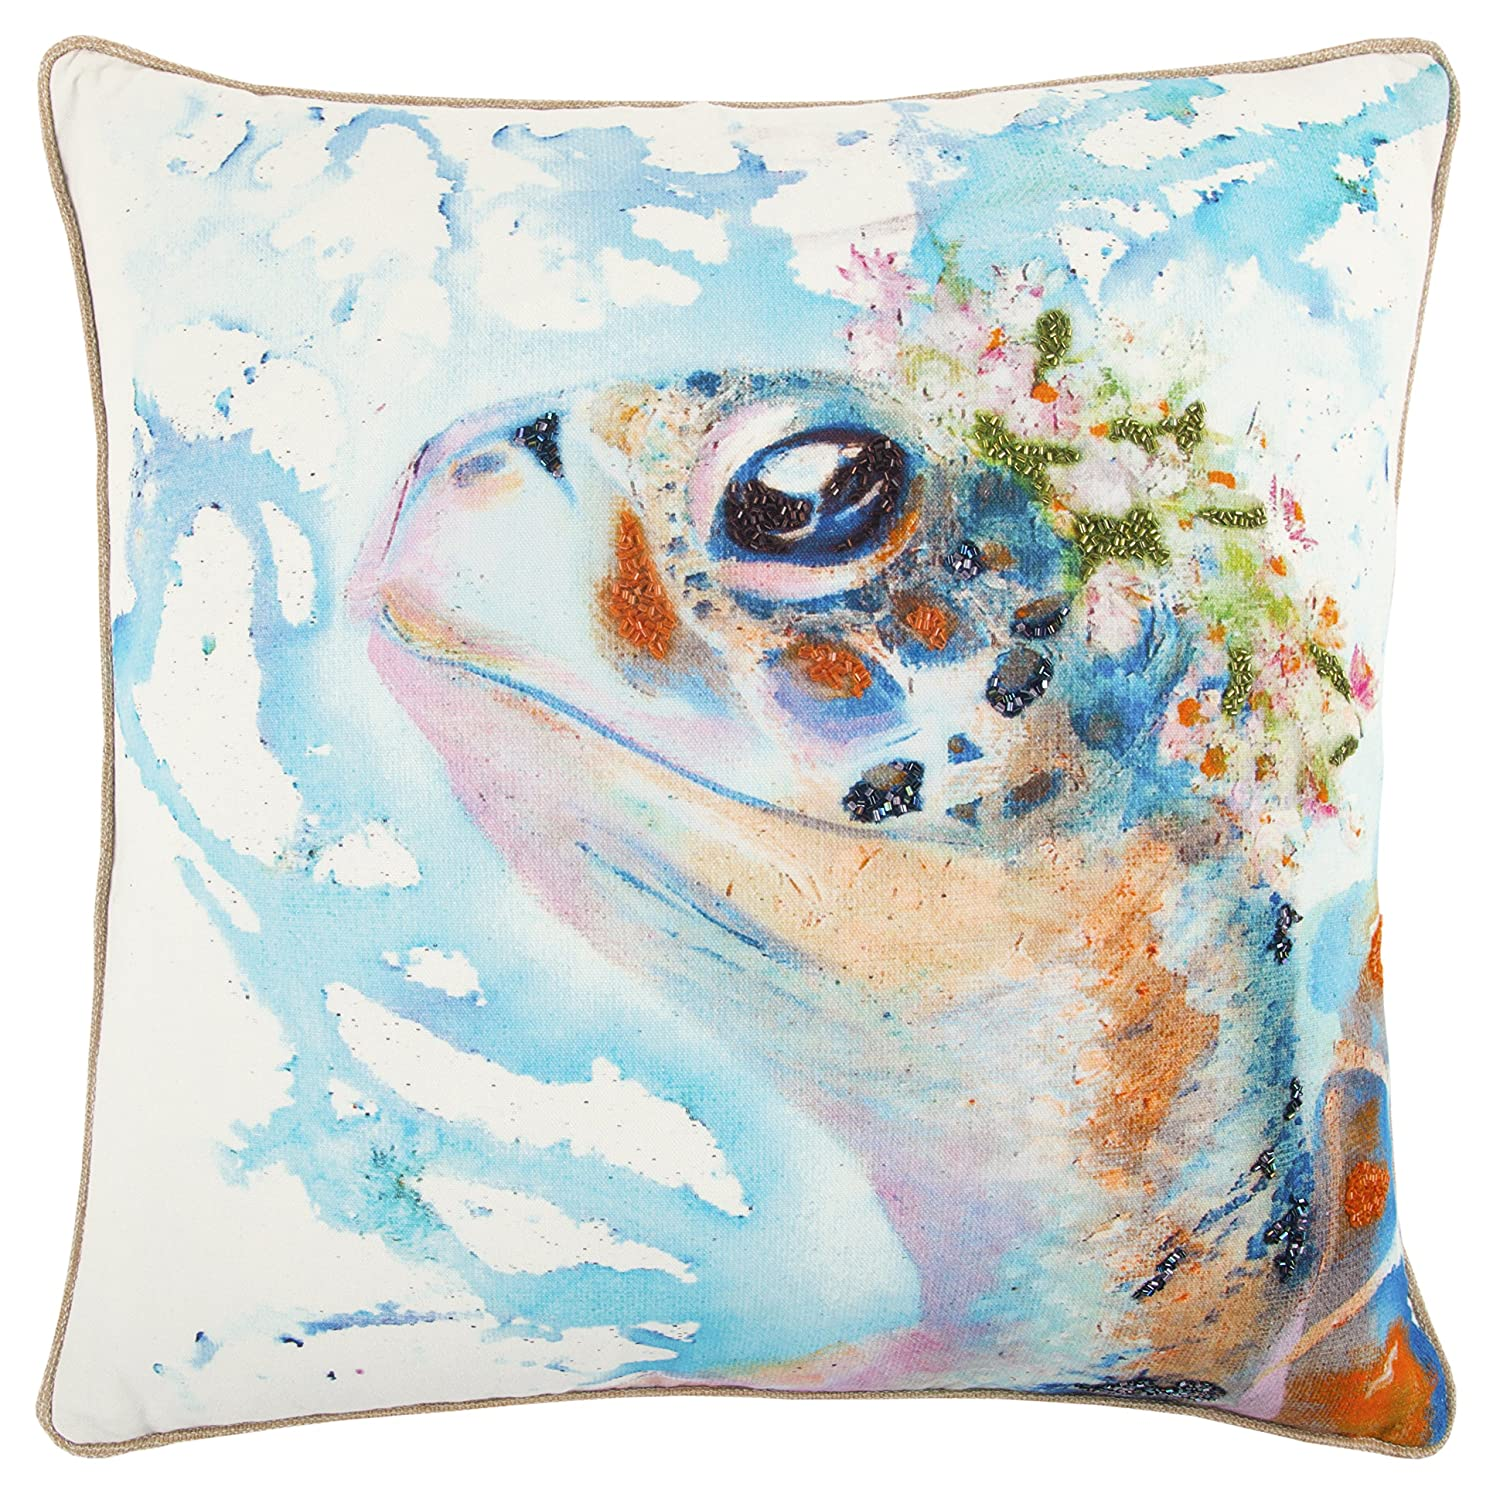 Blue//Red Rizzy Home Decorative Filled Pillow Mariah Parris by Turtle Cotton Decorative Pillow 20 x 20